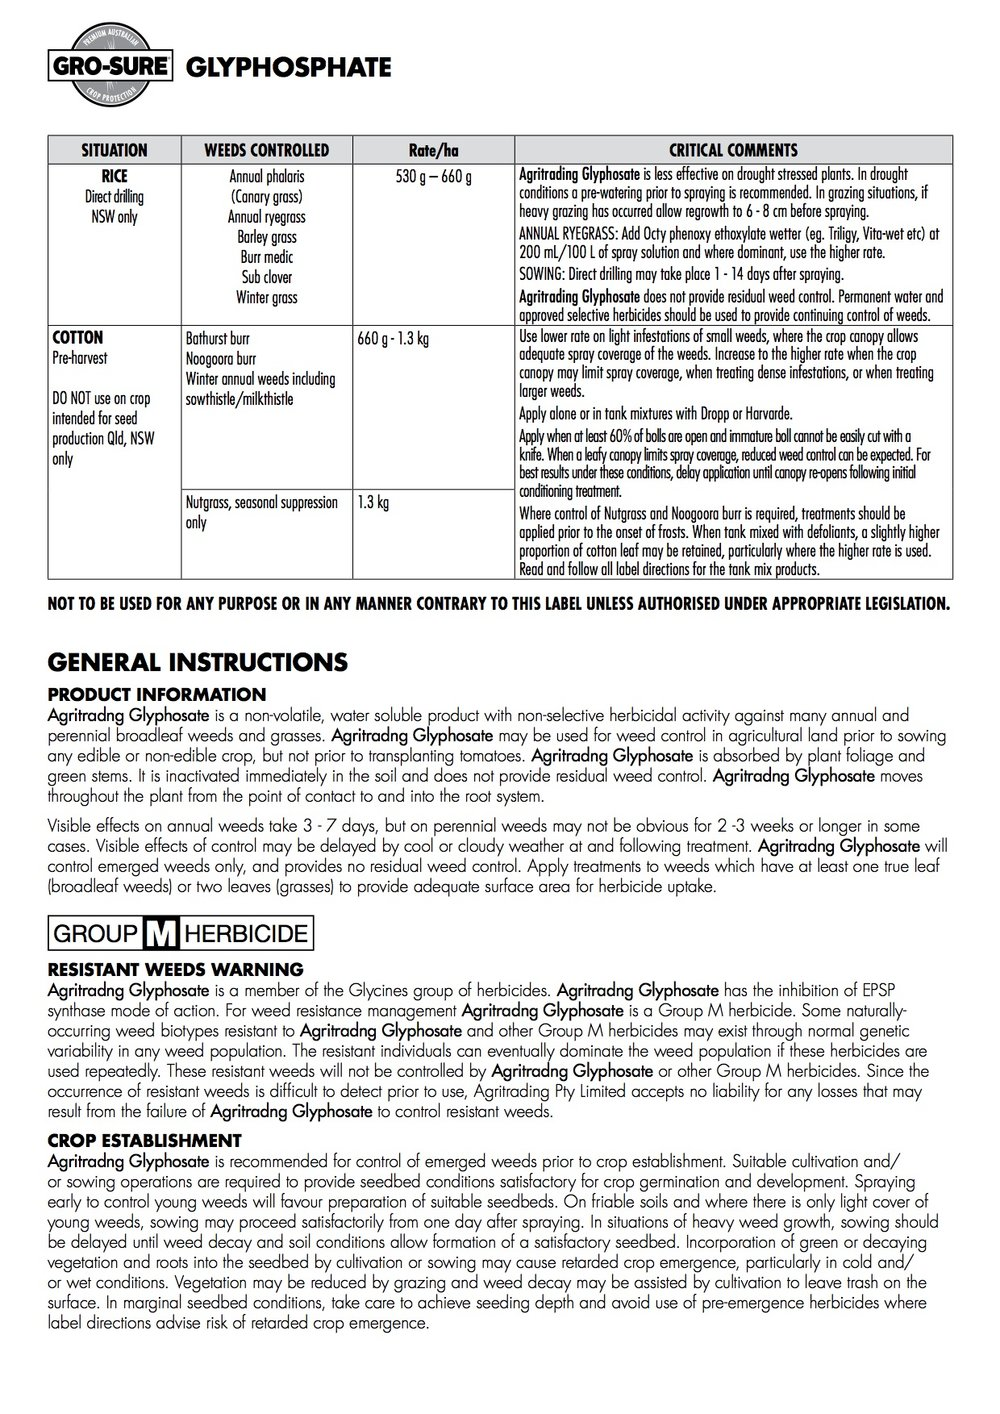 Glyphosphate 700 Web Label page 7 copy.jpg